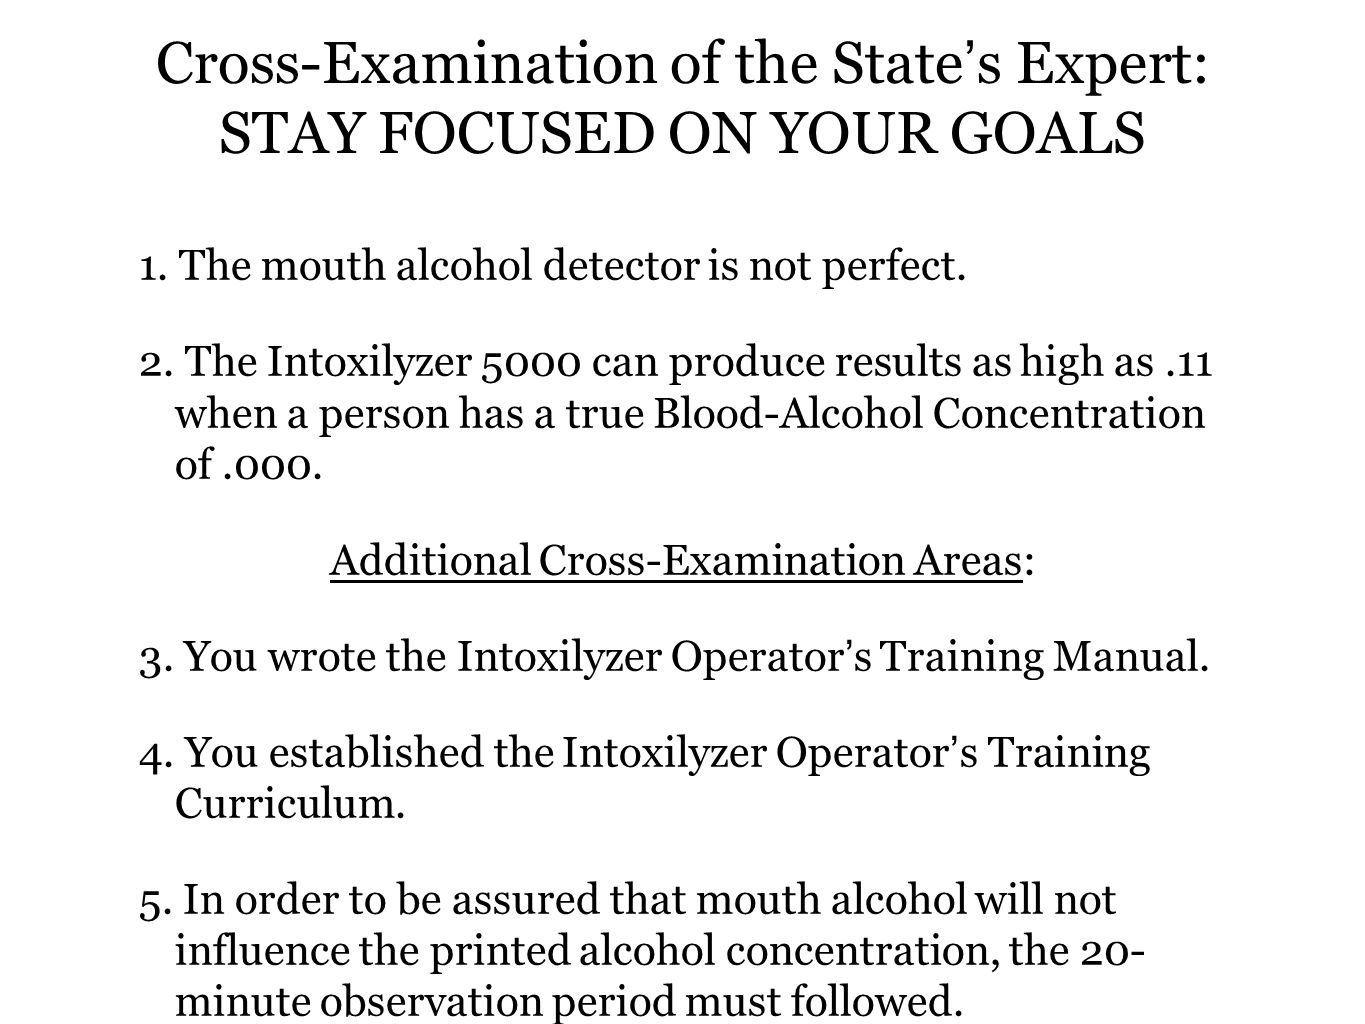 Cross-Examination of the State's Expert: STAY FOCUSED ON YOUR GOALS